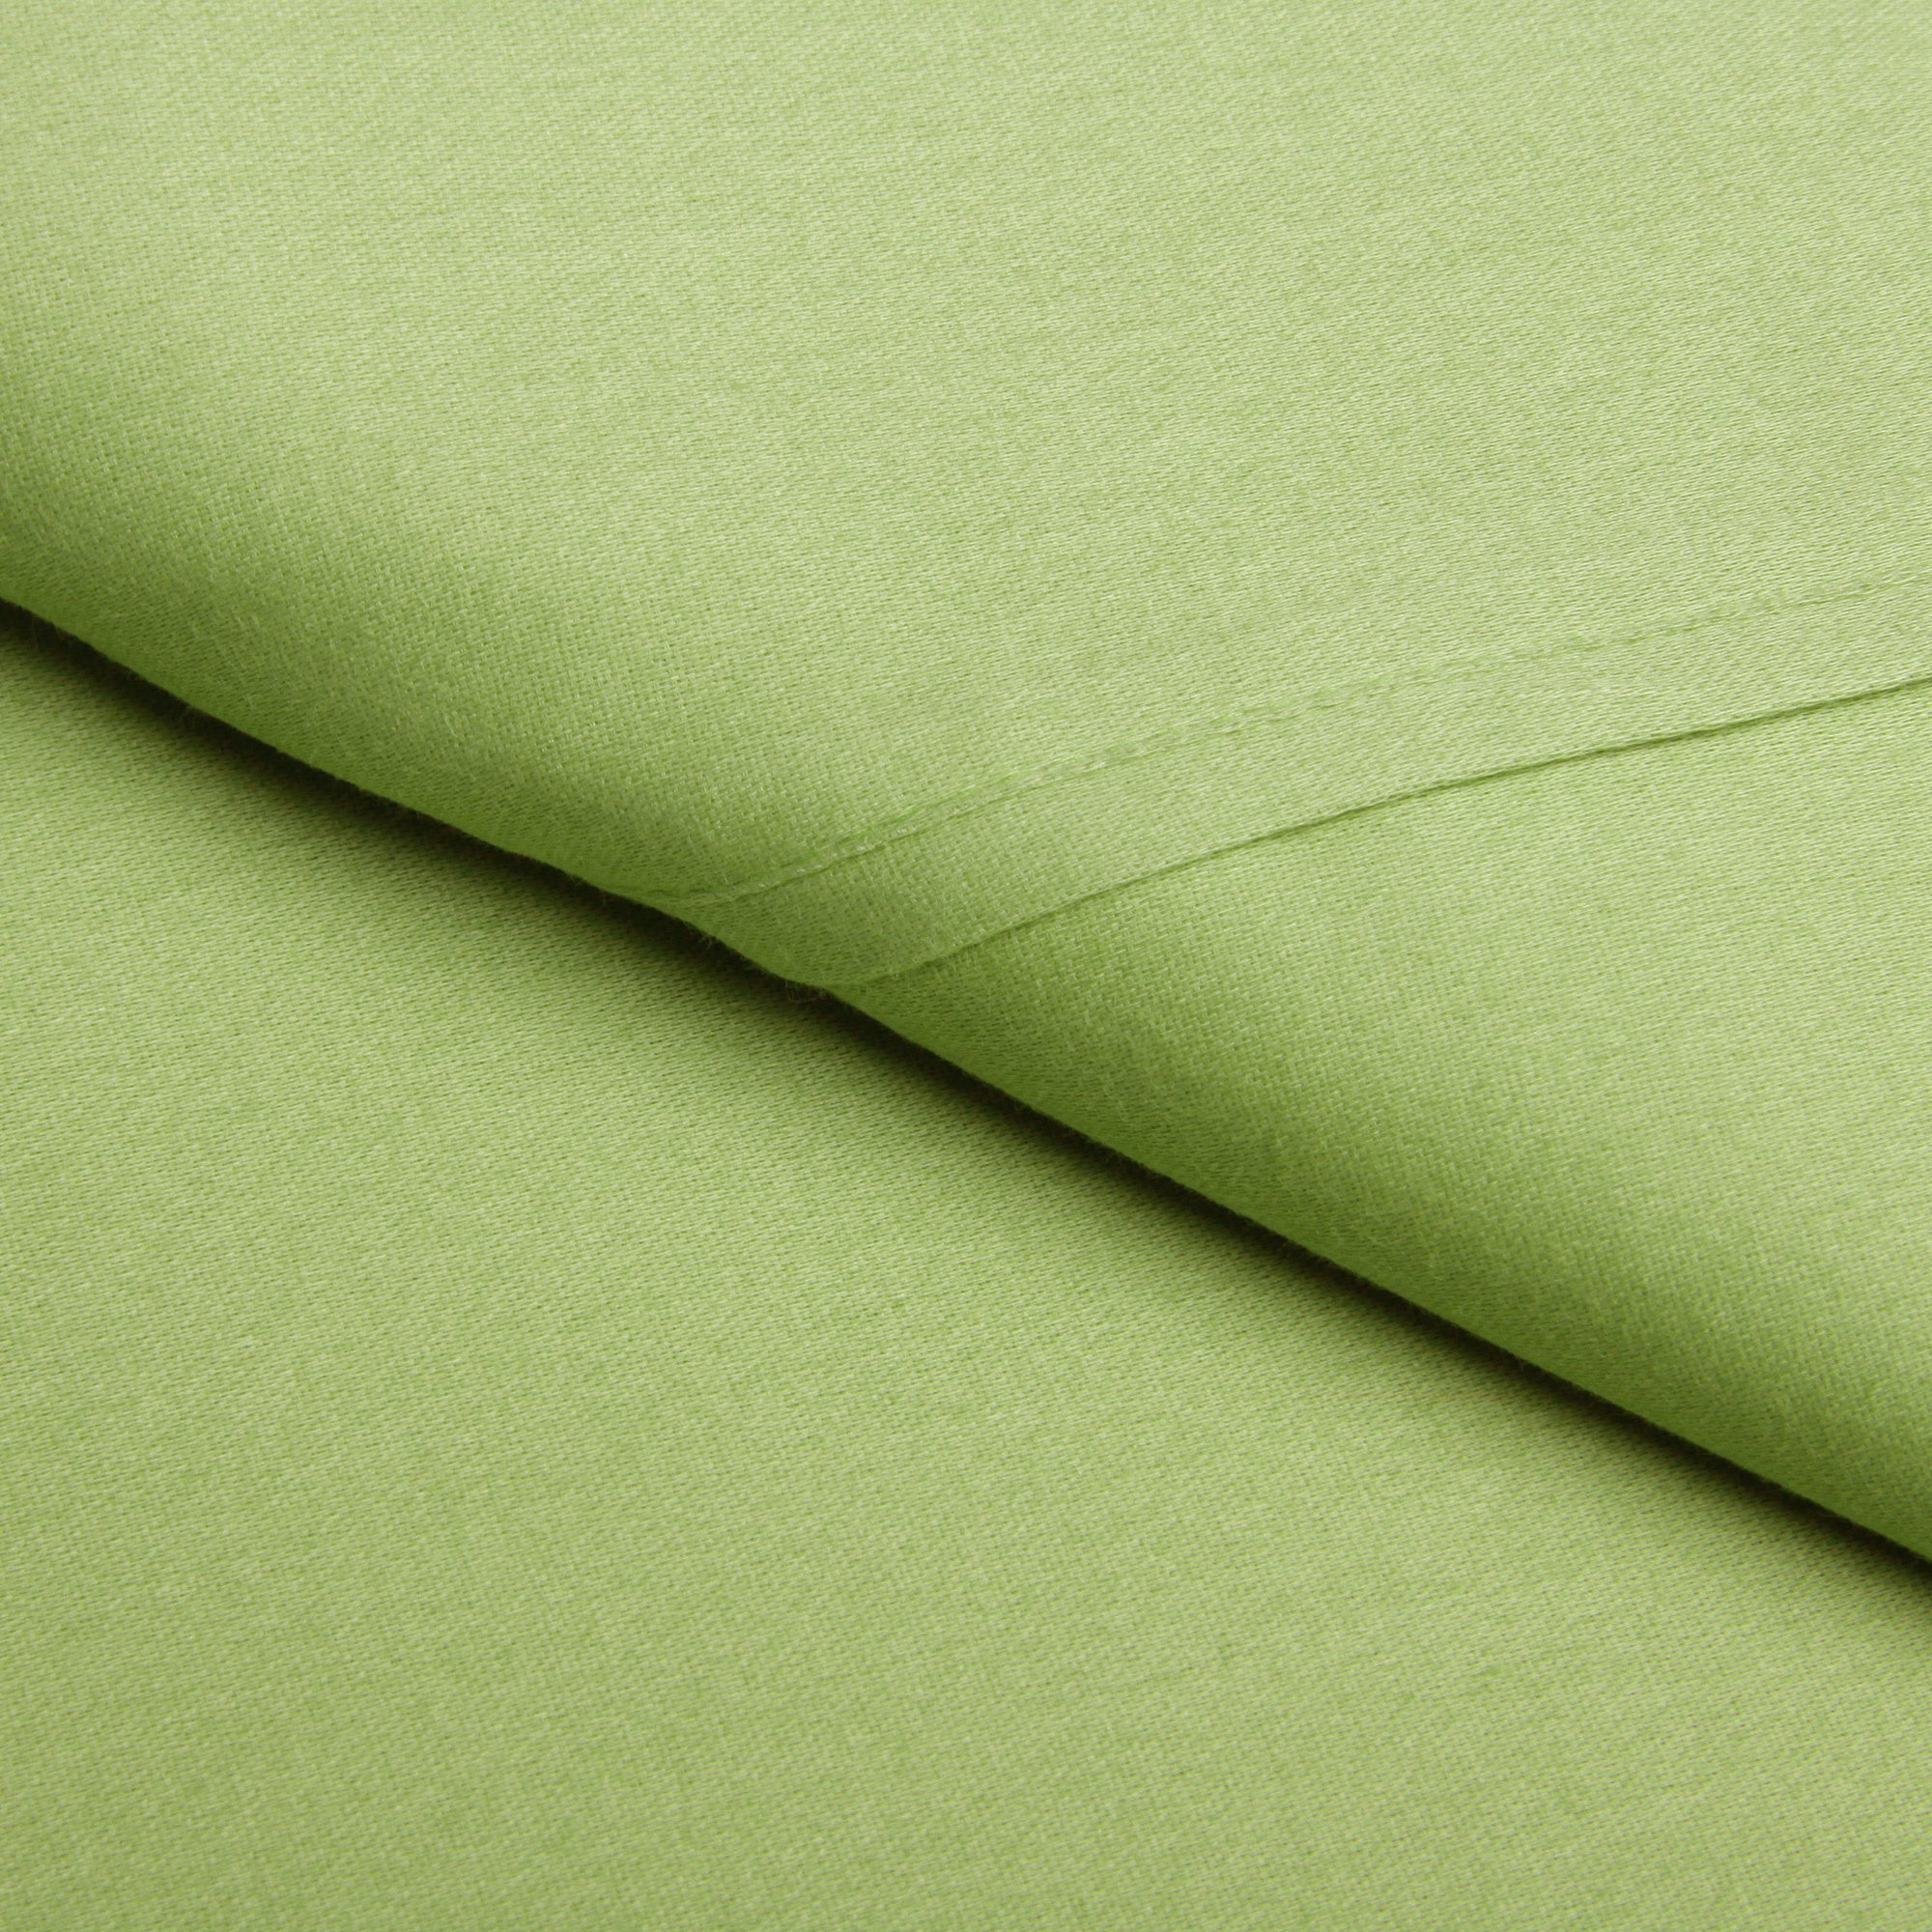 Overstock.com Brights Solid Wrinkle Resistant All Cotton Sheet Set